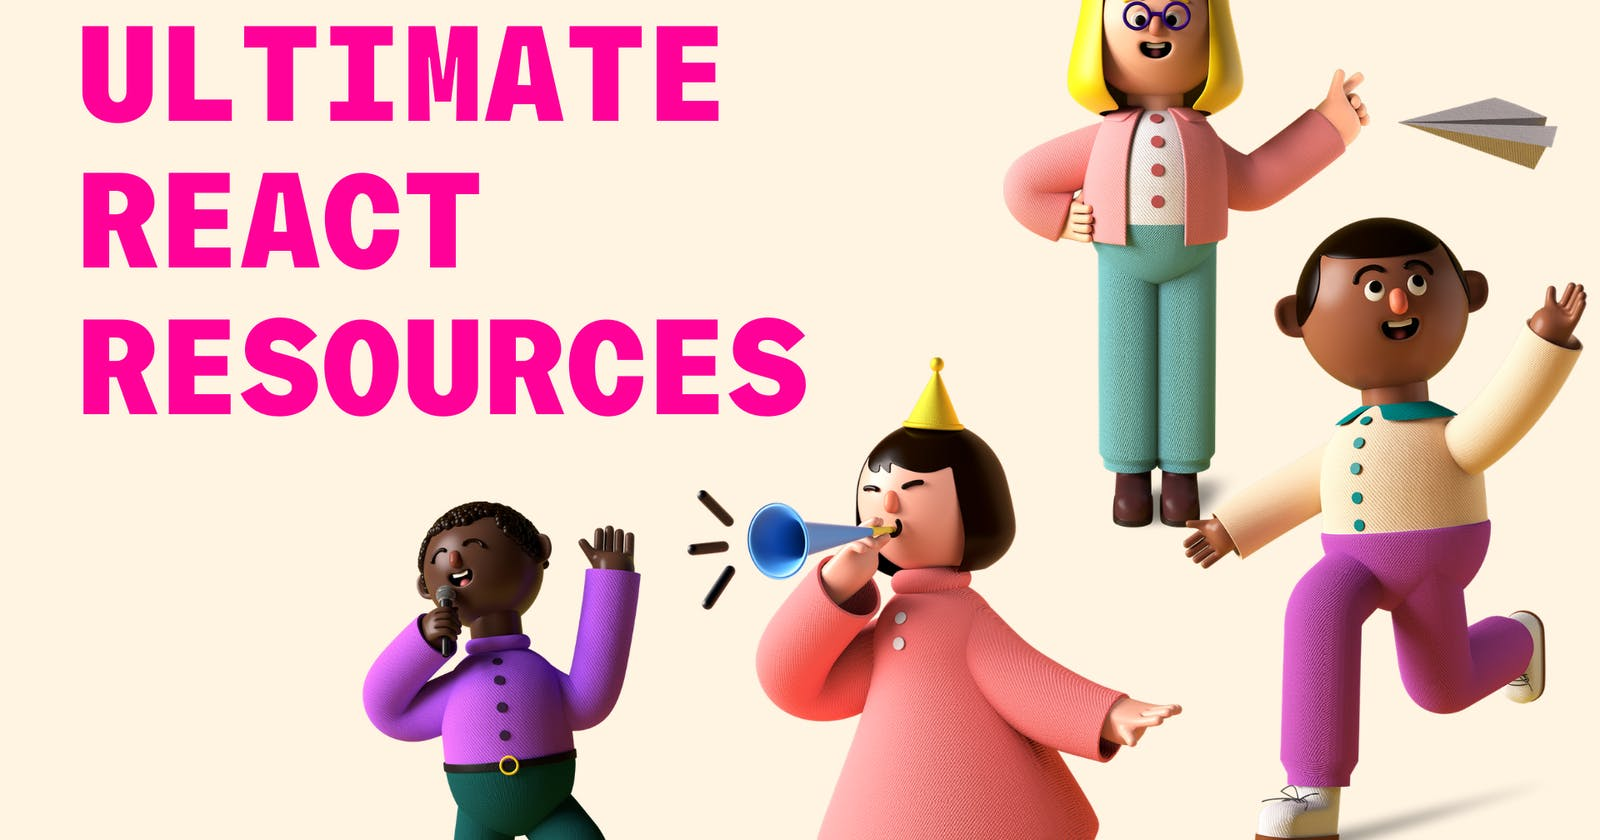 Ultimate React Resources